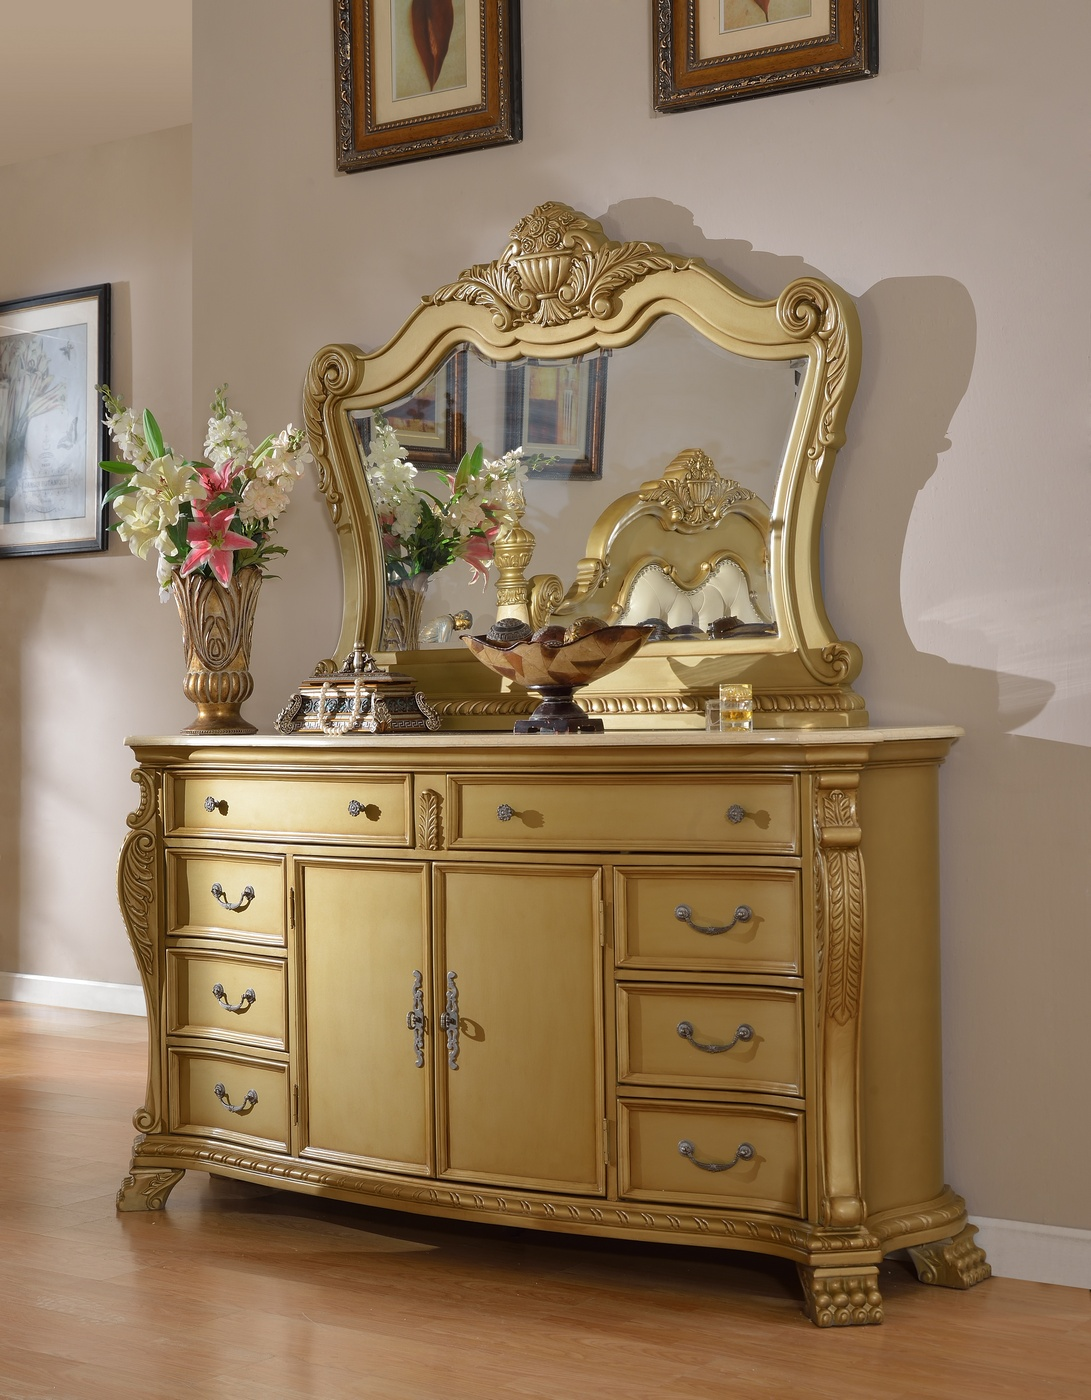 Lavish Low Post King 4-Piece Bedroom Set In Gold With